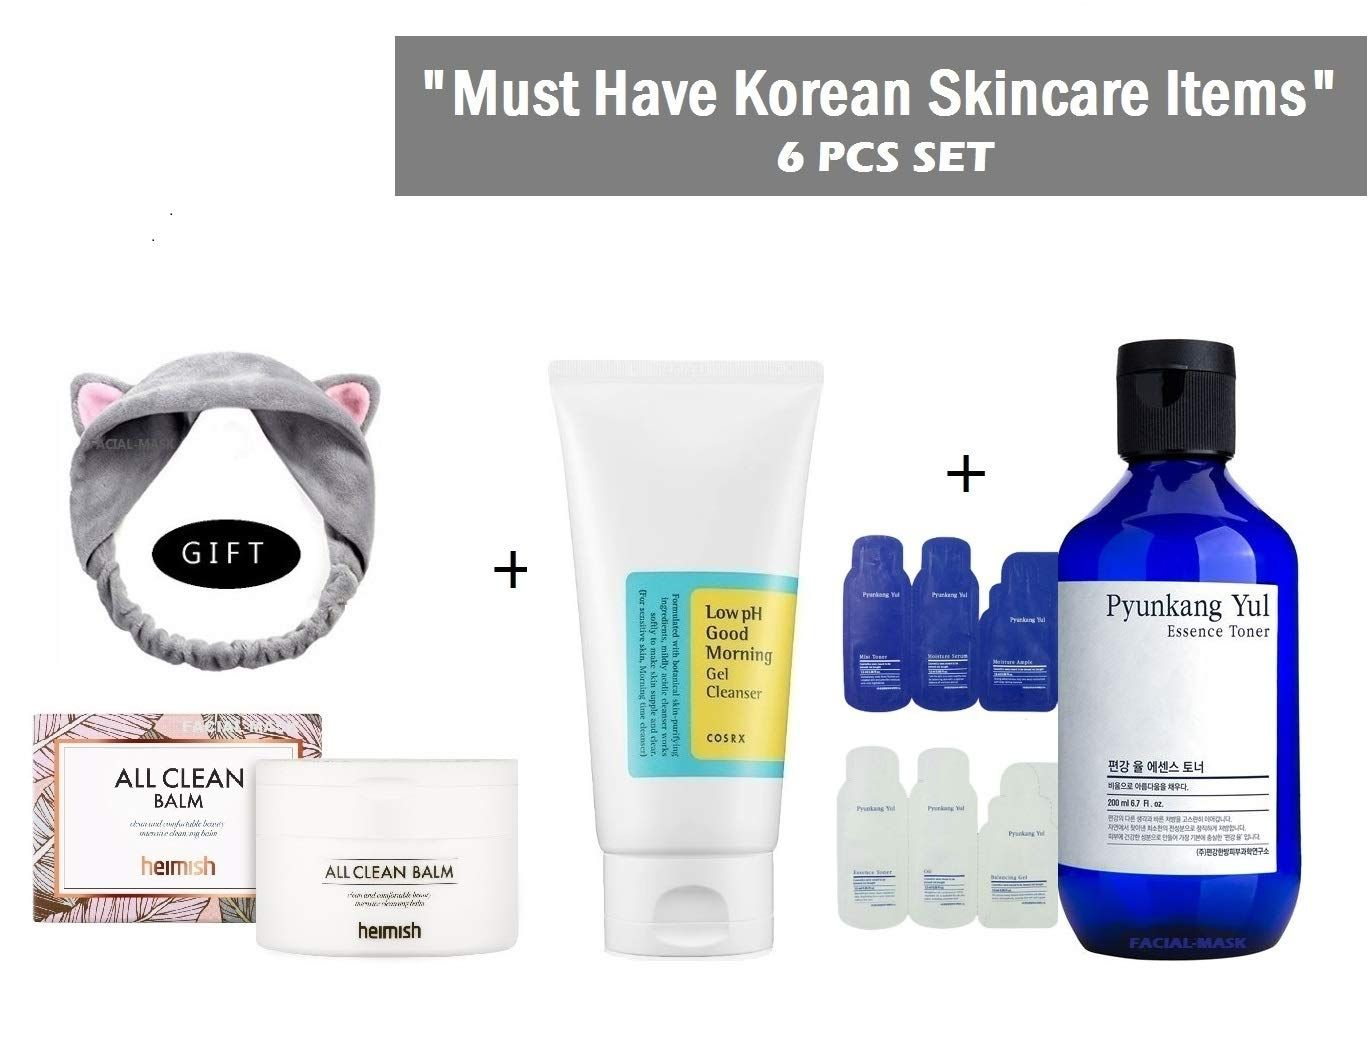 Heimish All Clean Balm Cosrx Low Ph Good Morning Gel Cleanser Bundle With Gifts 6 Items Gel Cleanser The Balm Korean Skincare